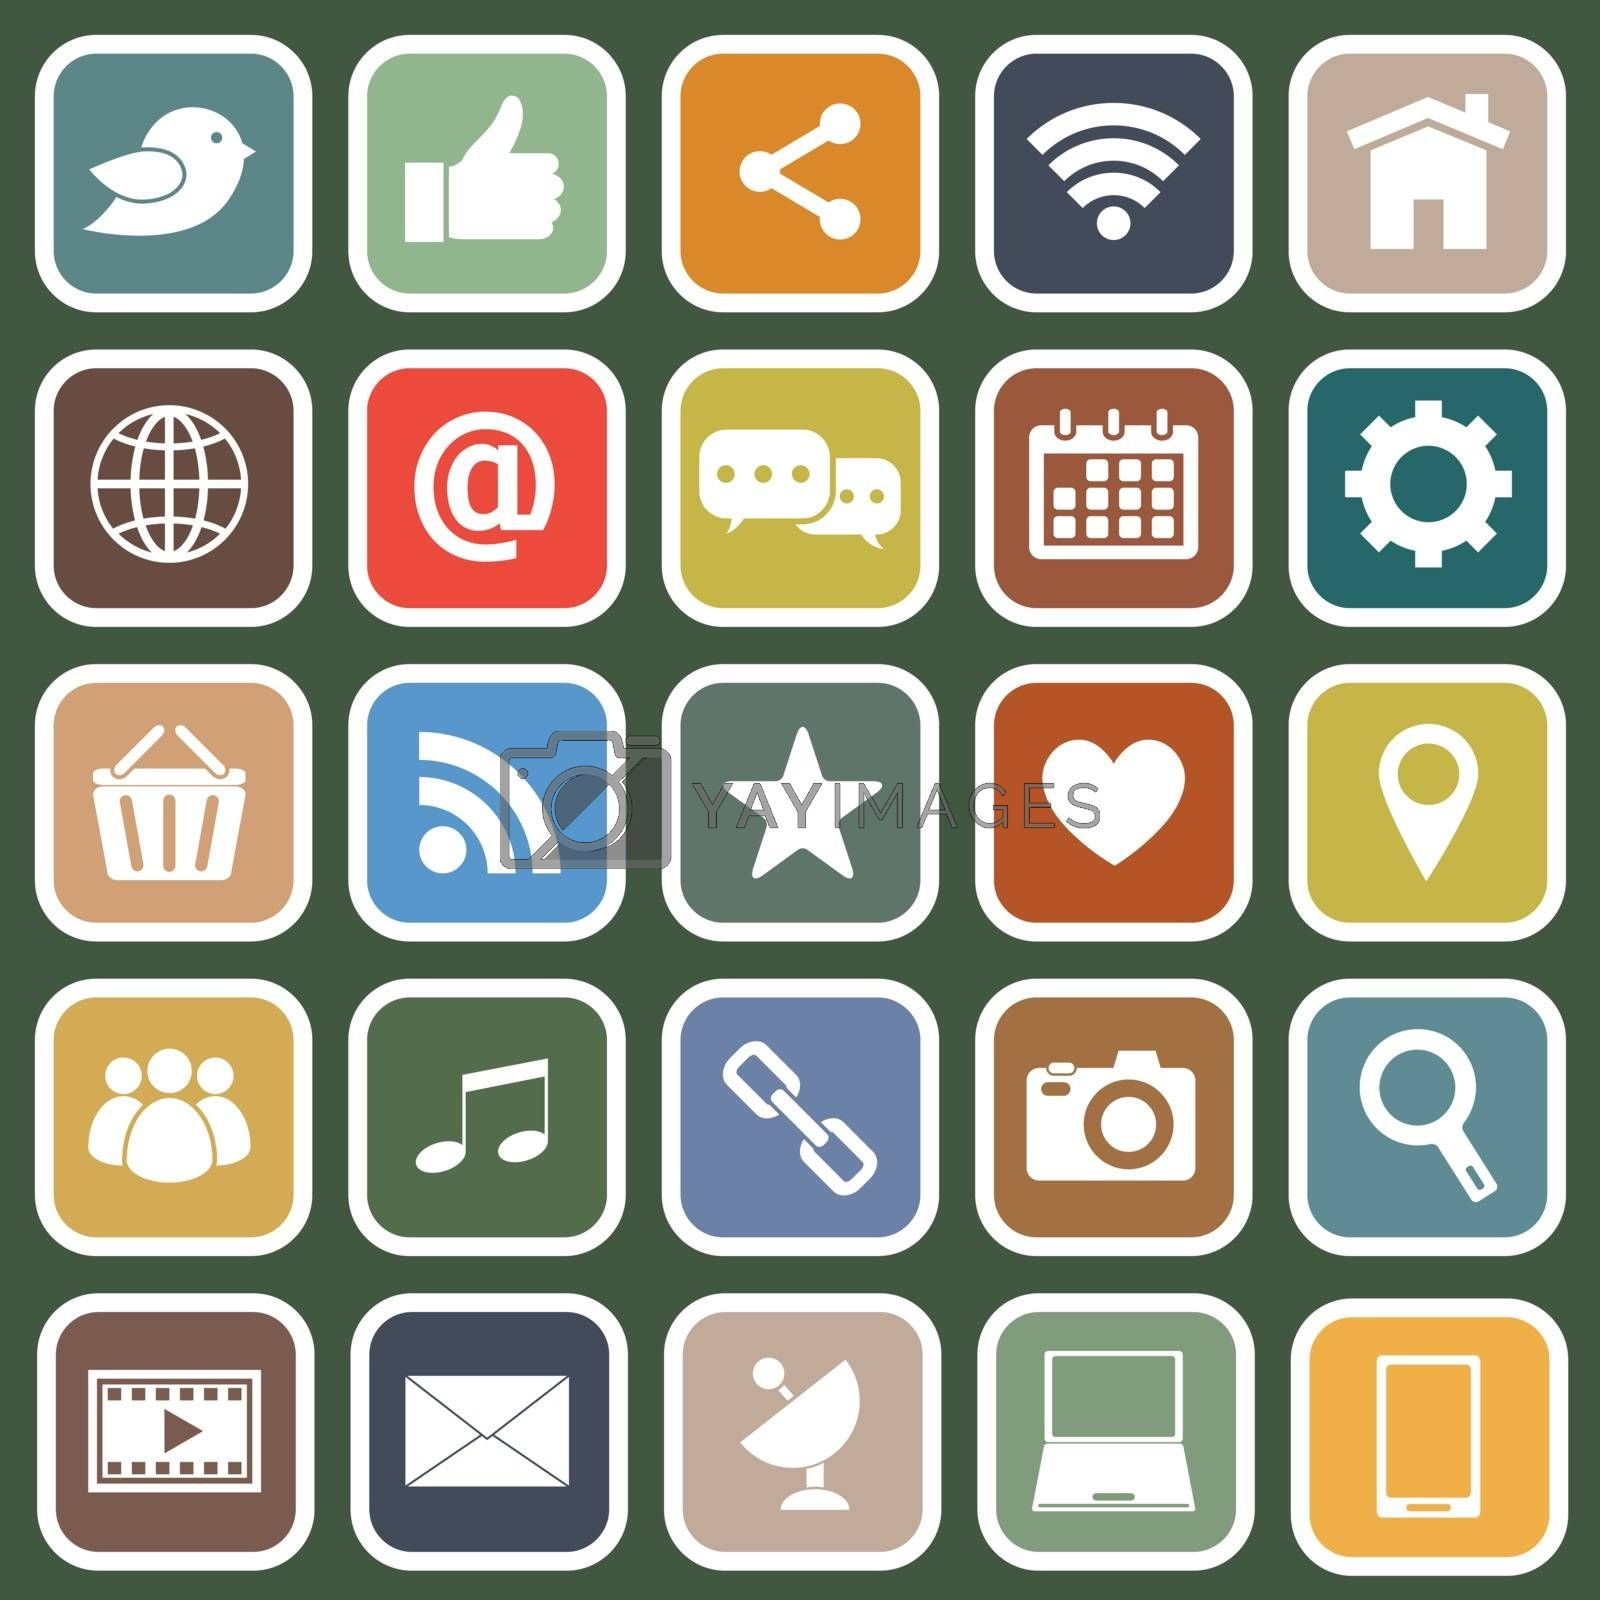 Social media flat icons on green background by punsayaporn